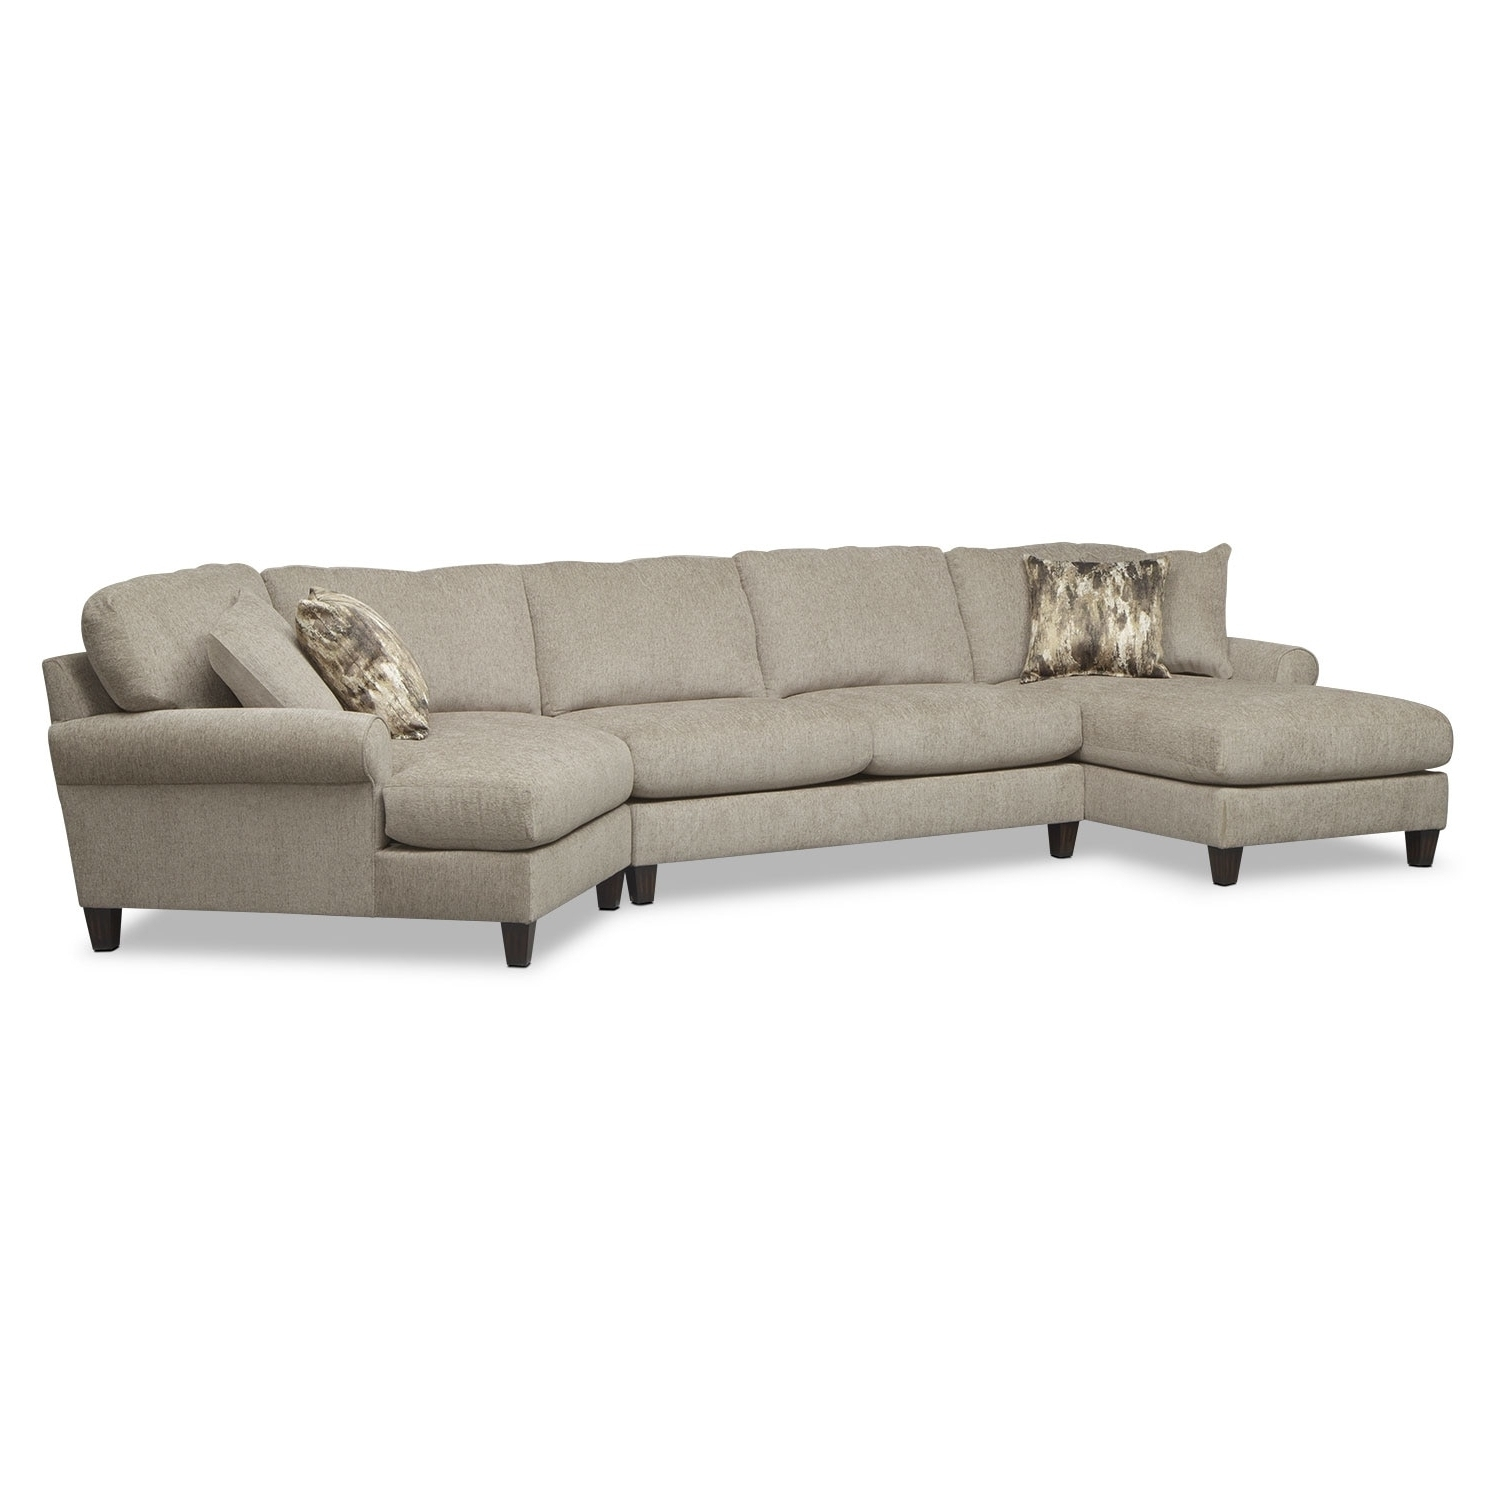 Quad Cities Sectional Sofas For Most Current Furniture : Craigslist Furniture Quad City Iowa Furniture (View 9 of 20)